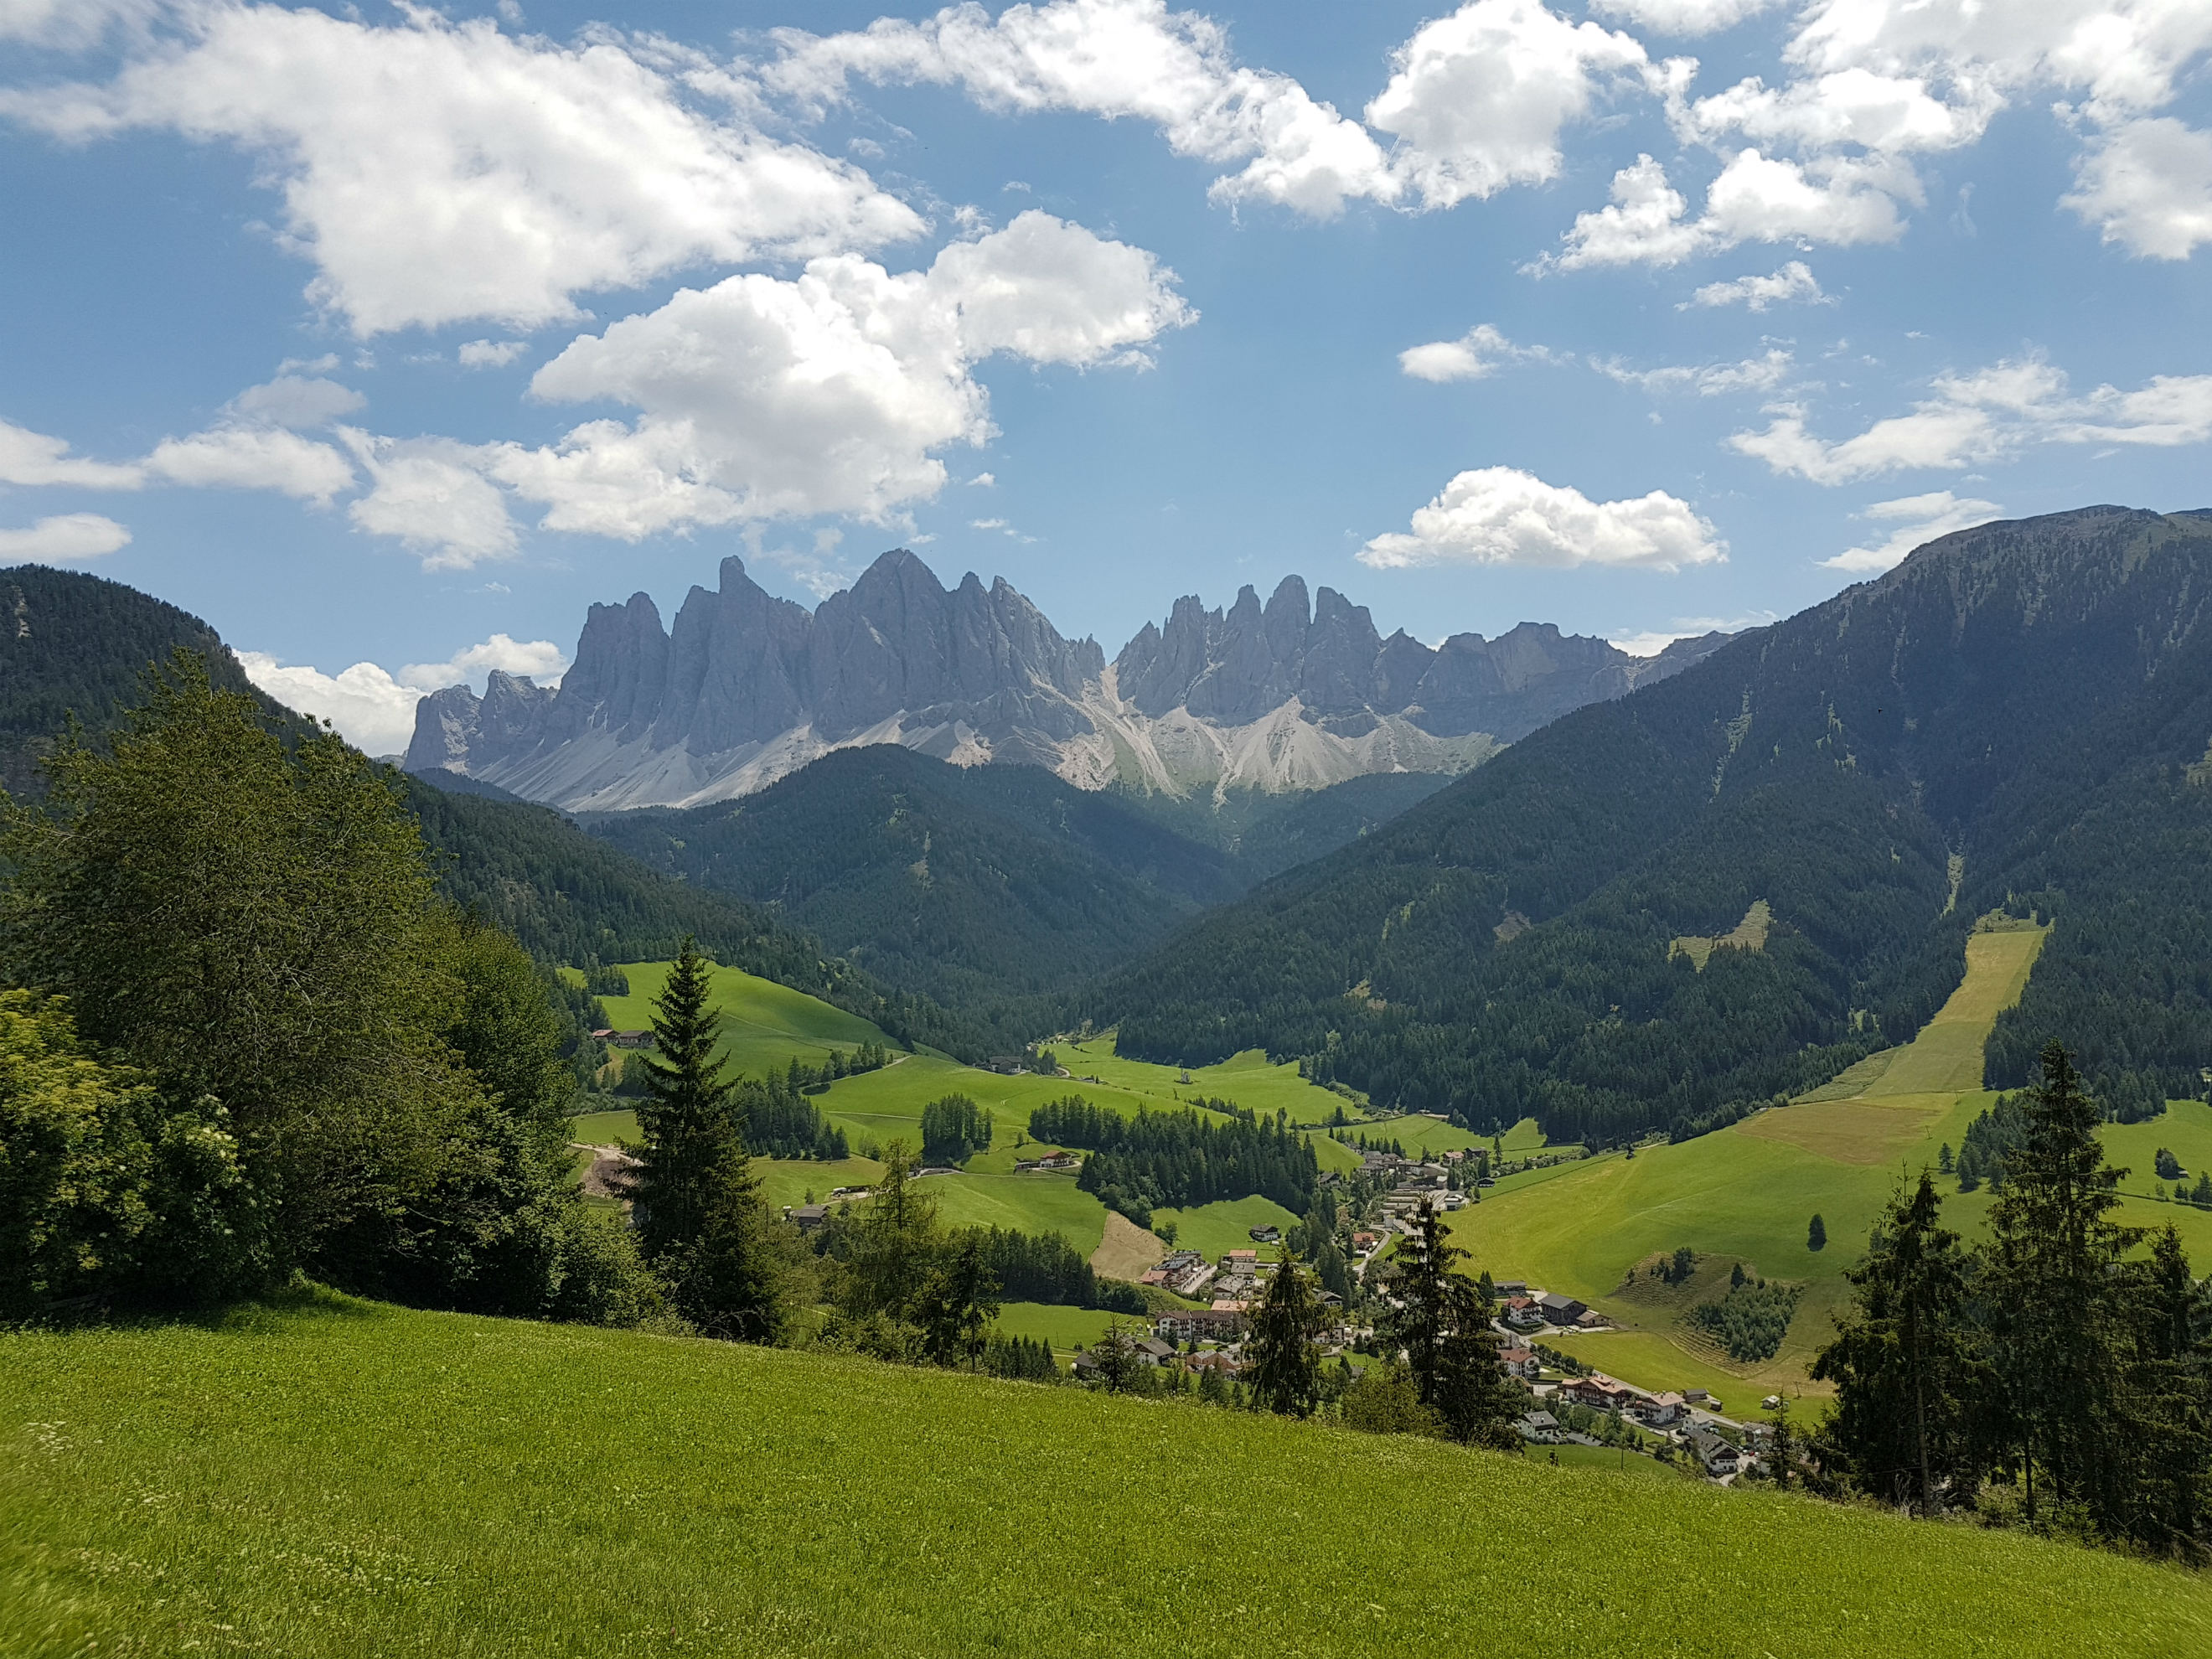 narodny-park-puez-odle-val-di-funes